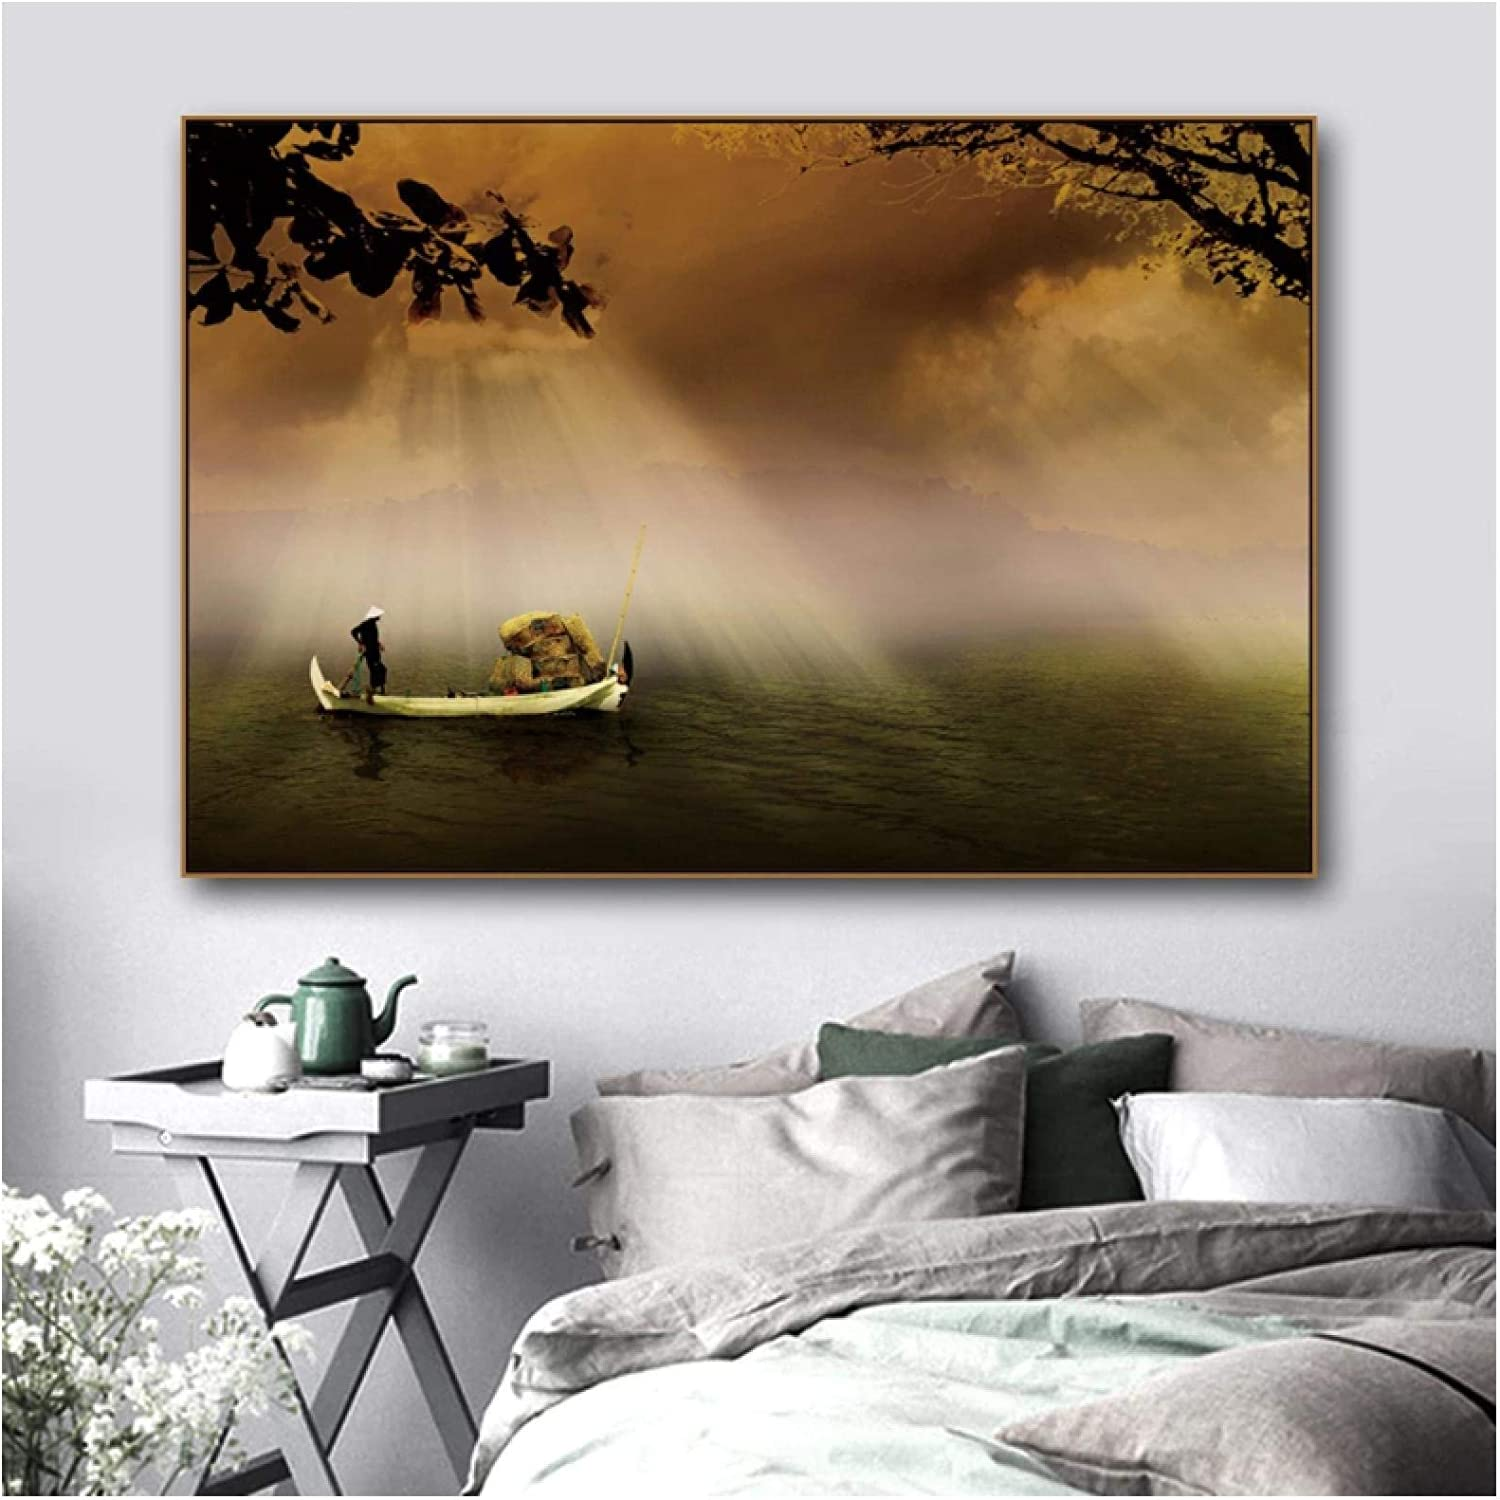 Wall Art ZXYFBH Canvas Art Oil Painting«Lake Boat in Twilight»Artwork Picture Art Poster Wall Decor Modern Home Living Room Decoration 15.7x19.7in(40x50cm) x1pcs No Frame